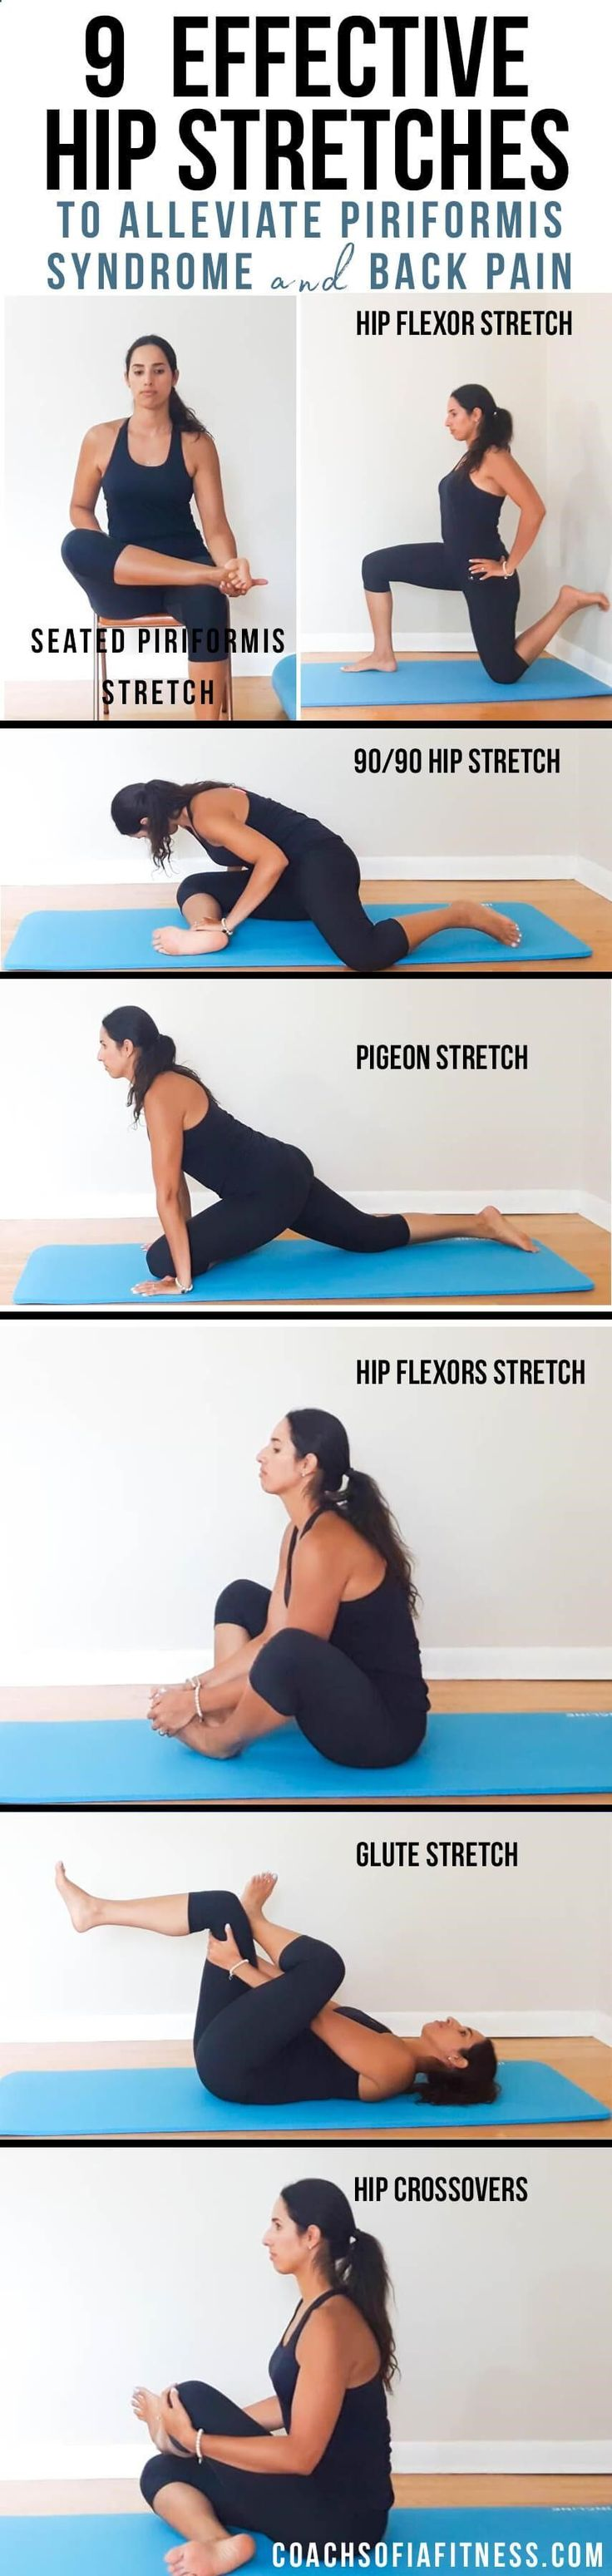 While over stretching may not necessarily be good for your lower back, in this guide I explain how to wisely stretch the muscles that need to be stretched and the exercises that are the most beneficial to you. These exercises target the muscles that tend lower back pain how to relive